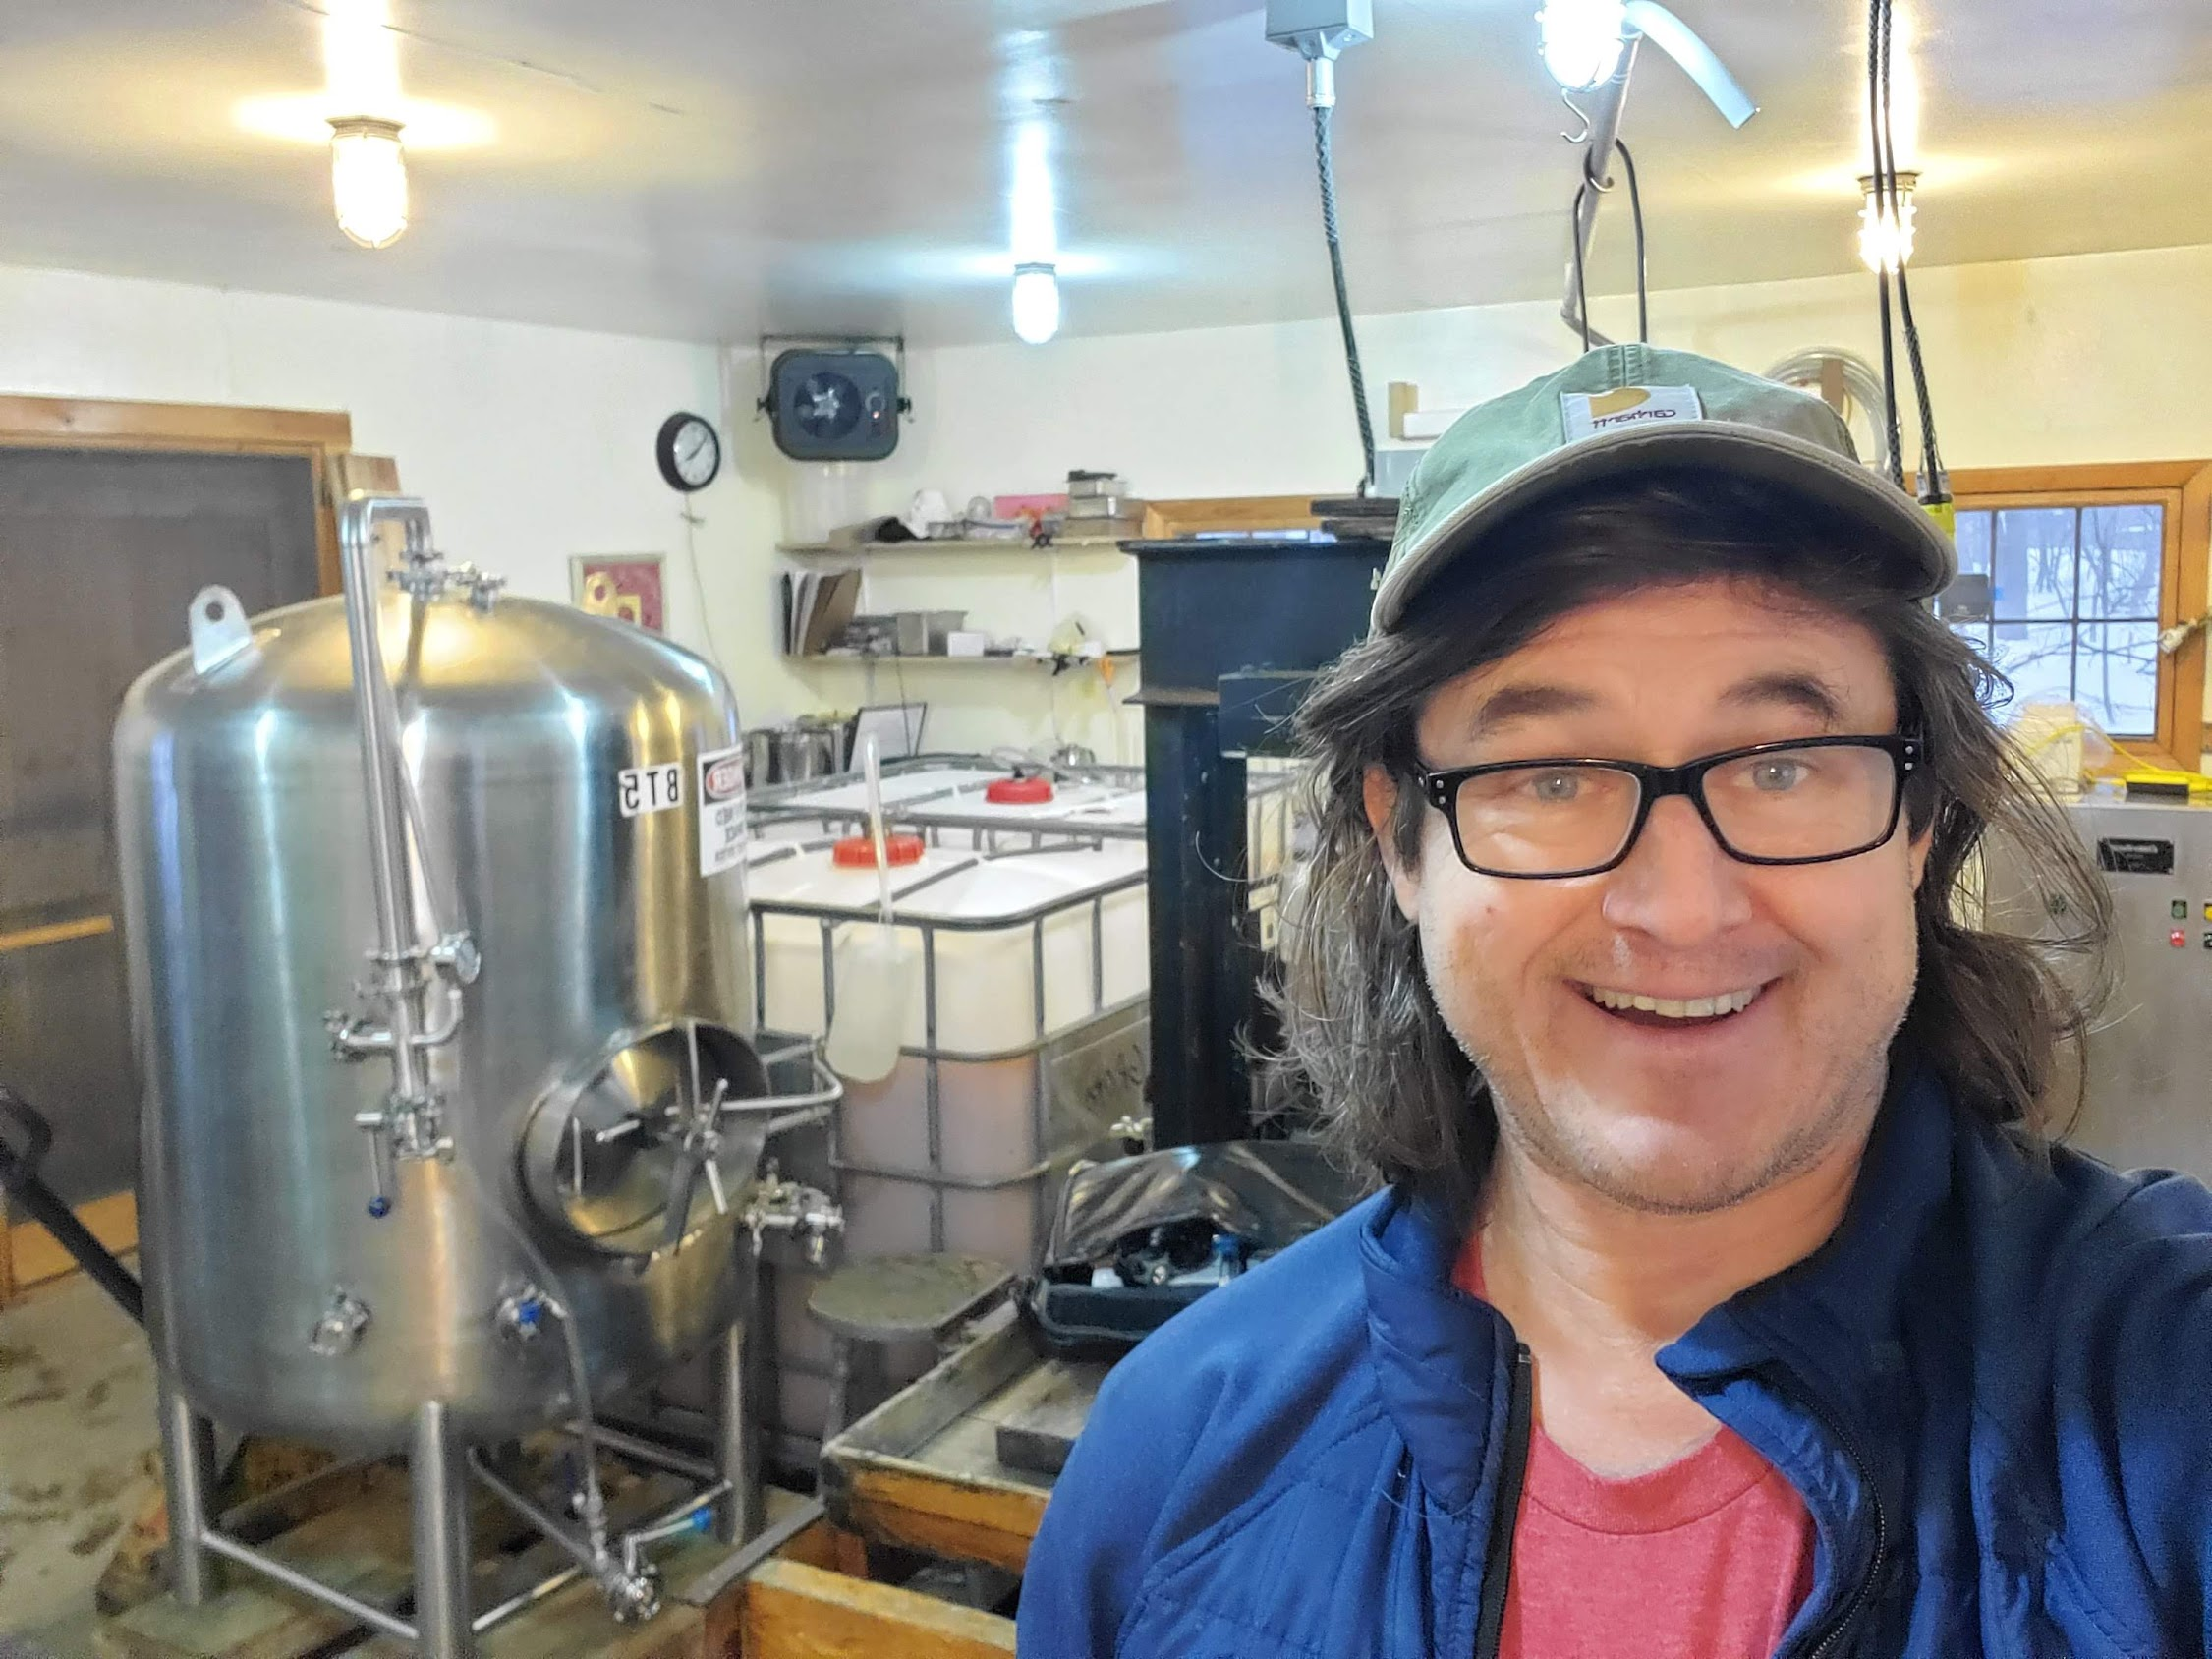 Headshot of Willian Grote, founder of New Salem Cider with cider press and other equipment in the background.